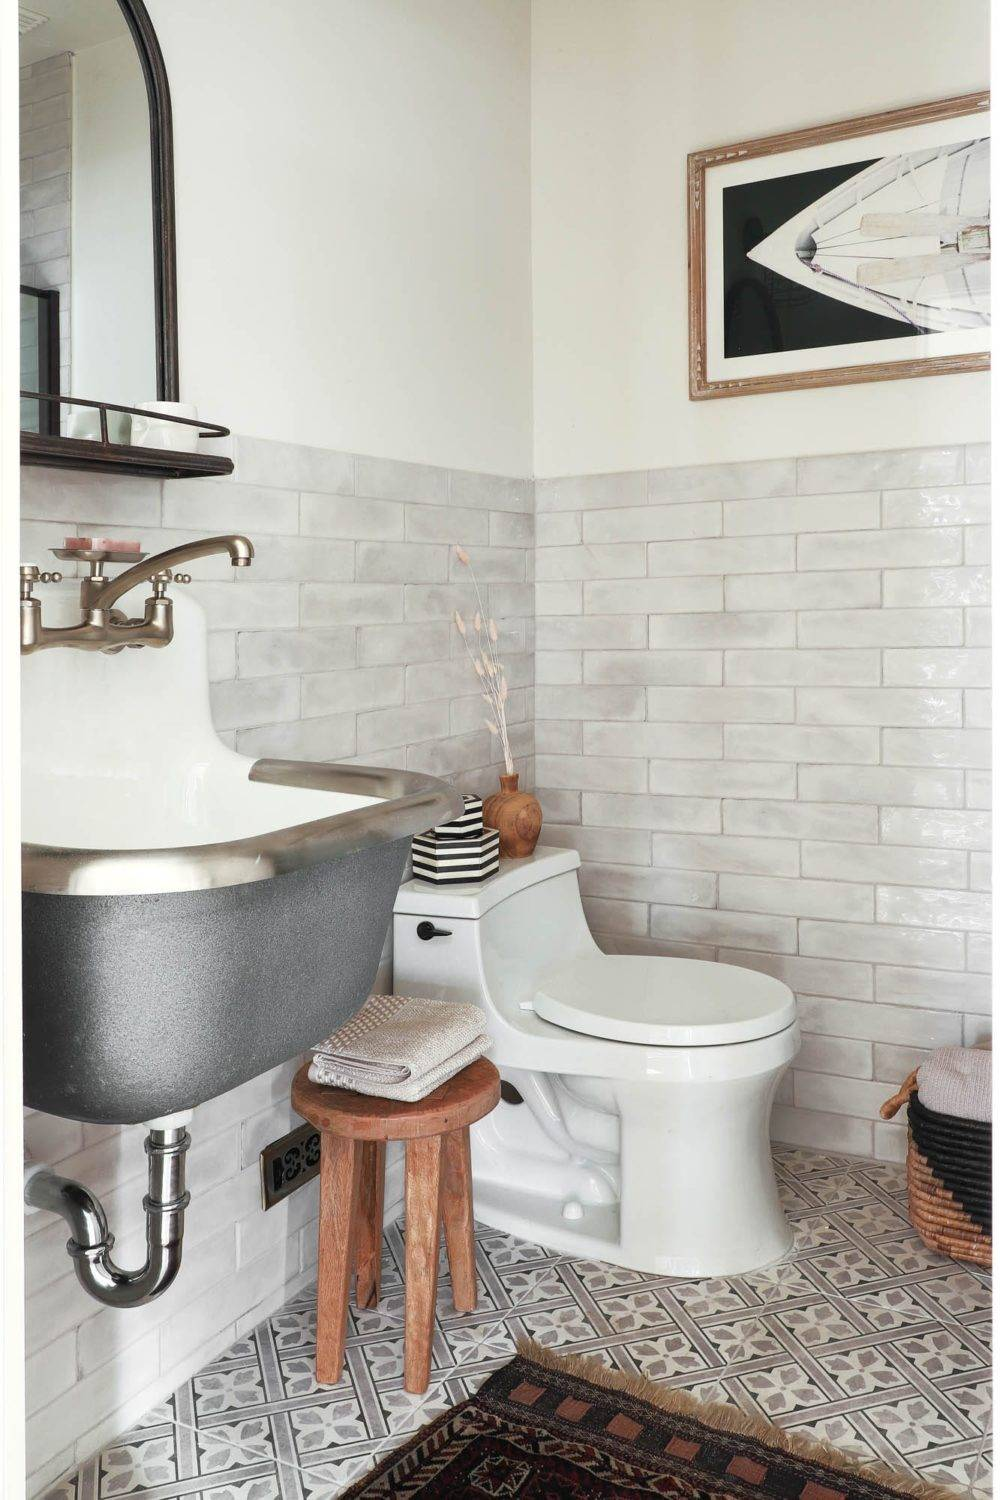 Subway tile and patterned floor tile